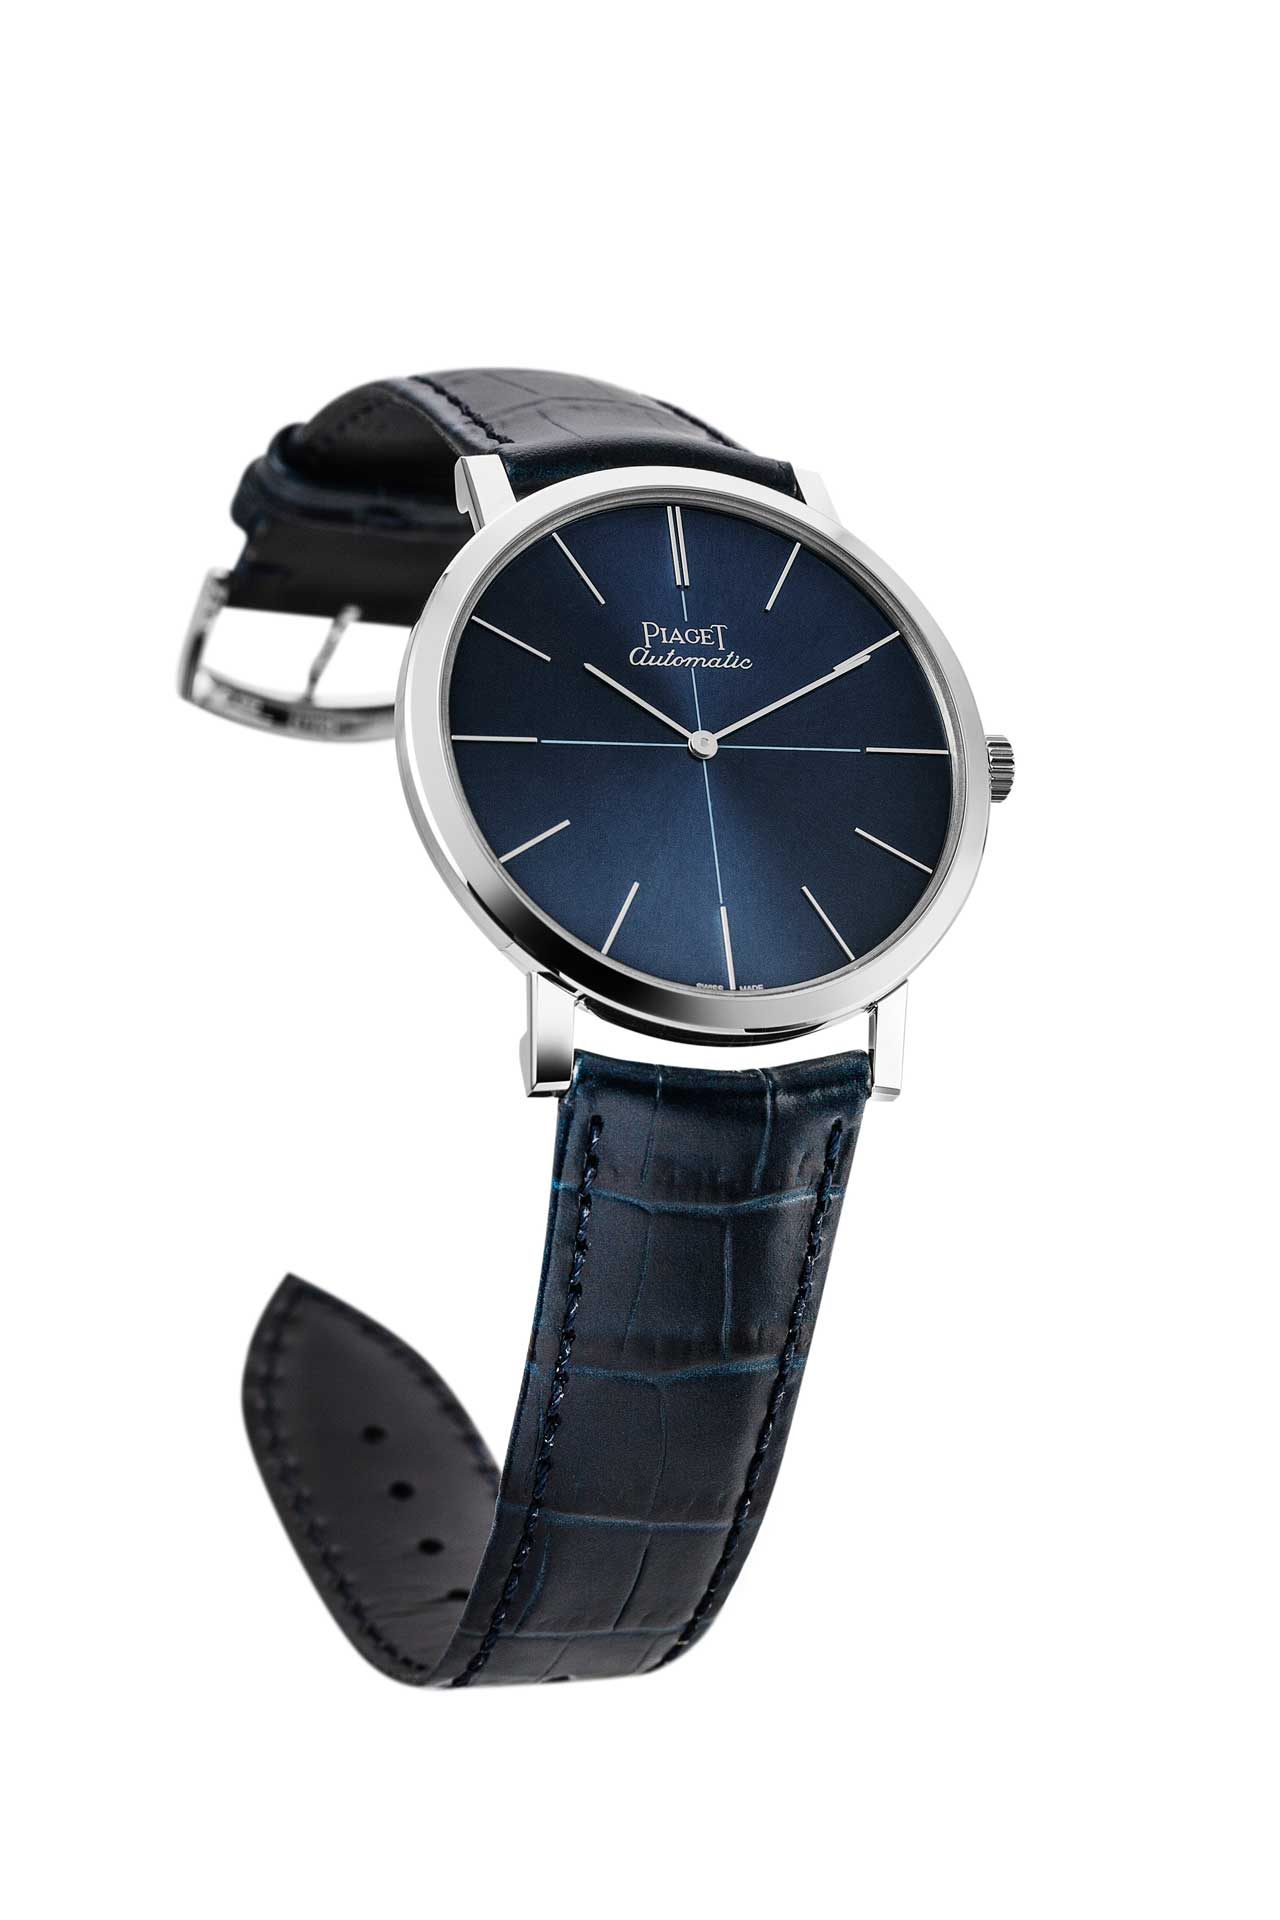 polo all s mayfair brand watches piaget watch of image by